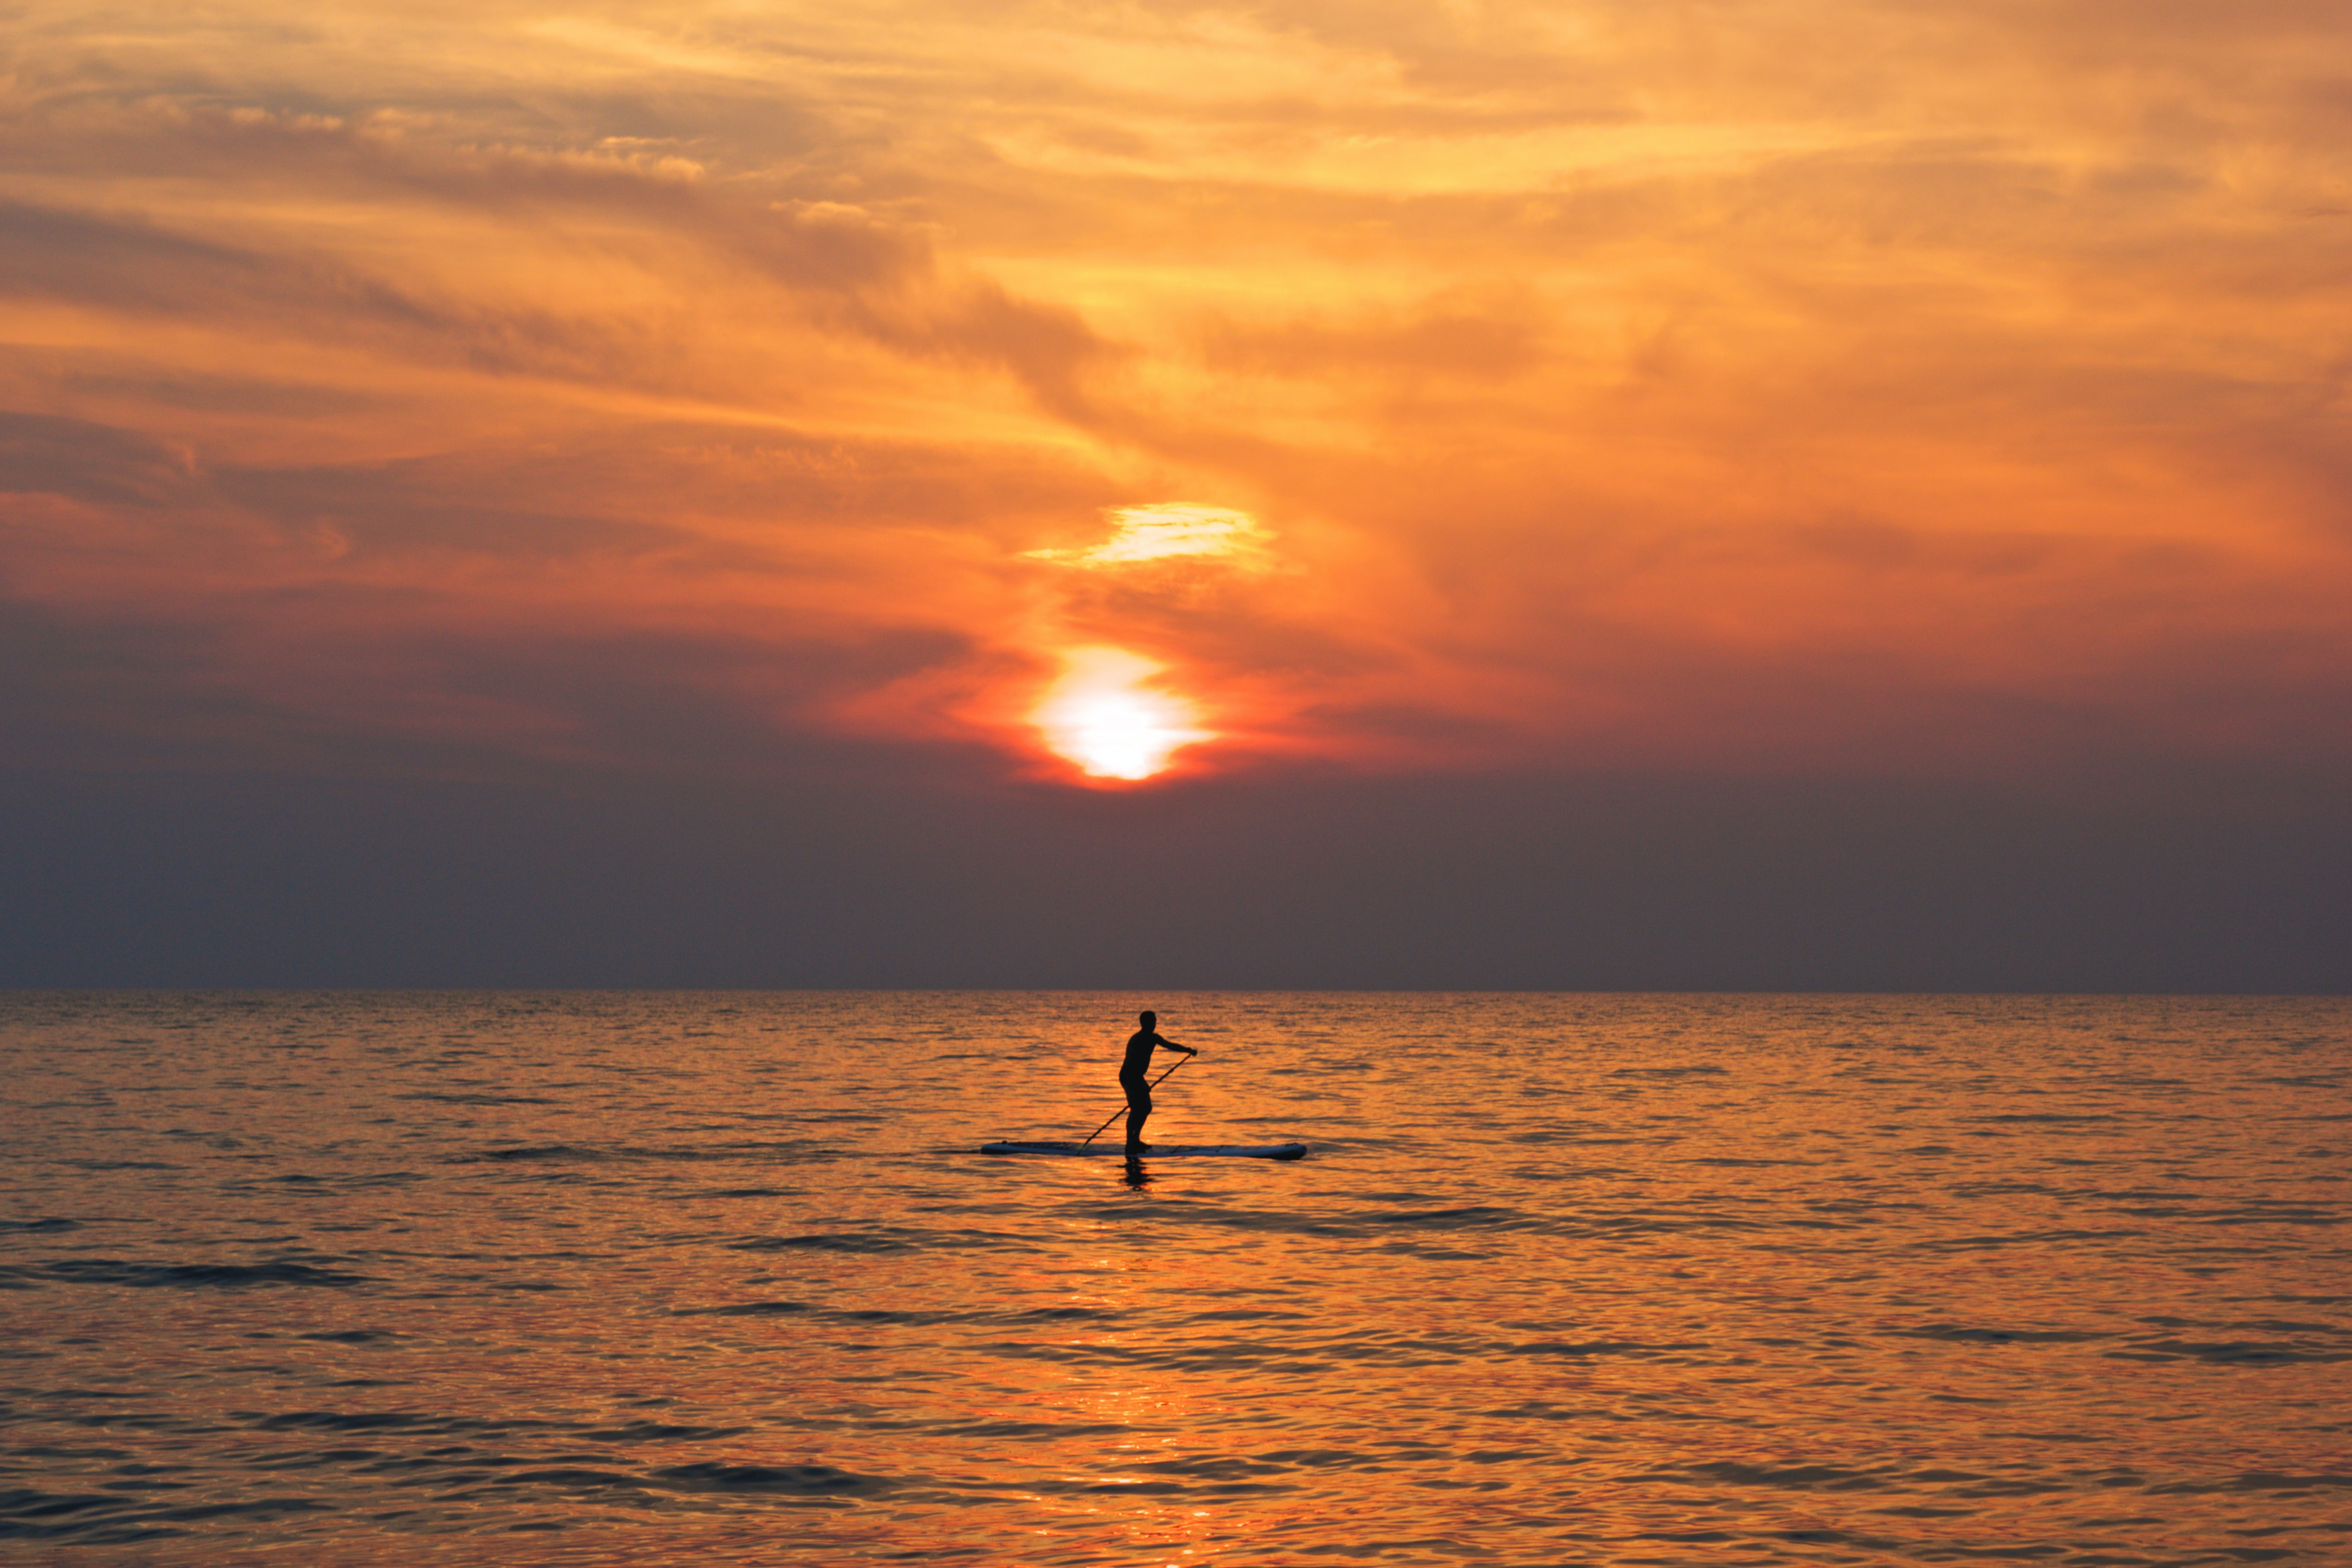 silhouette of person on boat holding paddle during golden hour